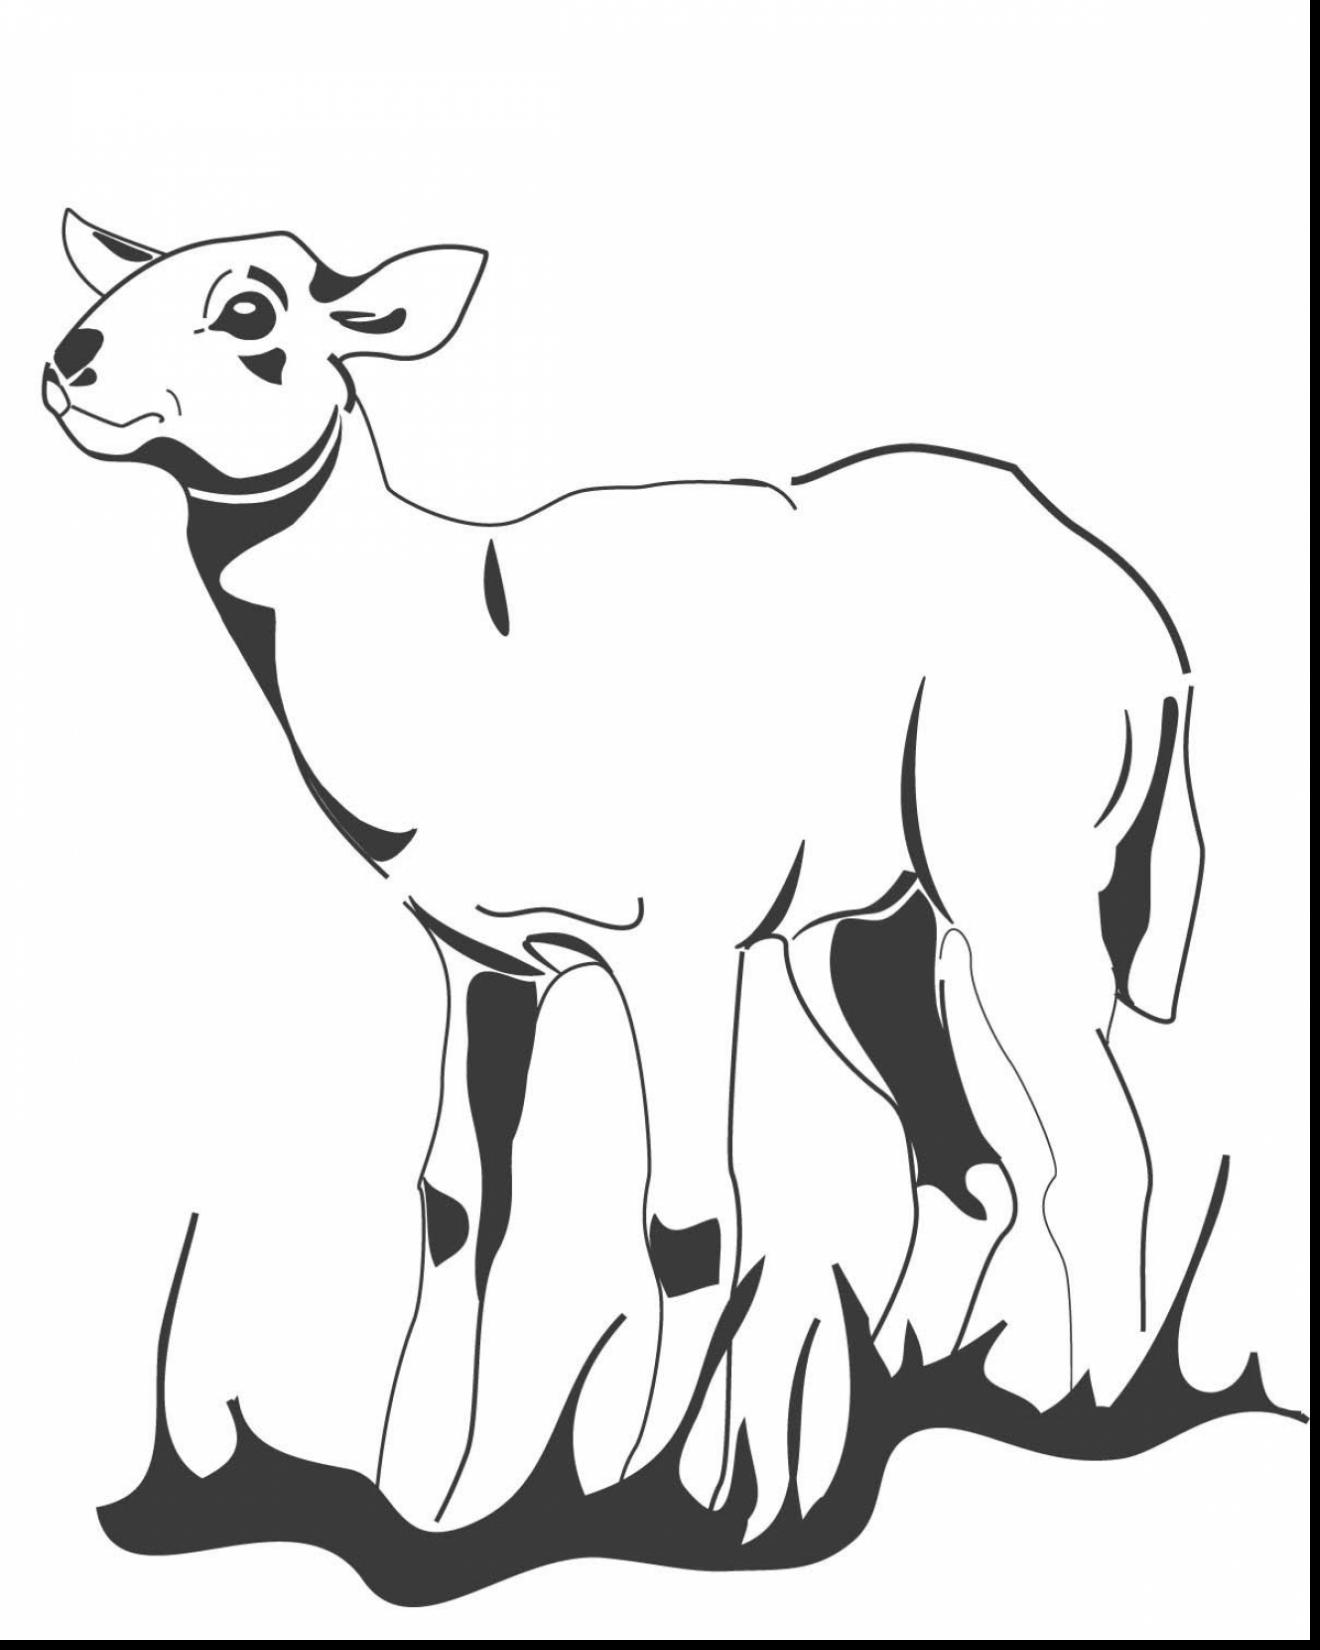 1320x1650 Lamb Coloring Page Image Clipart Images